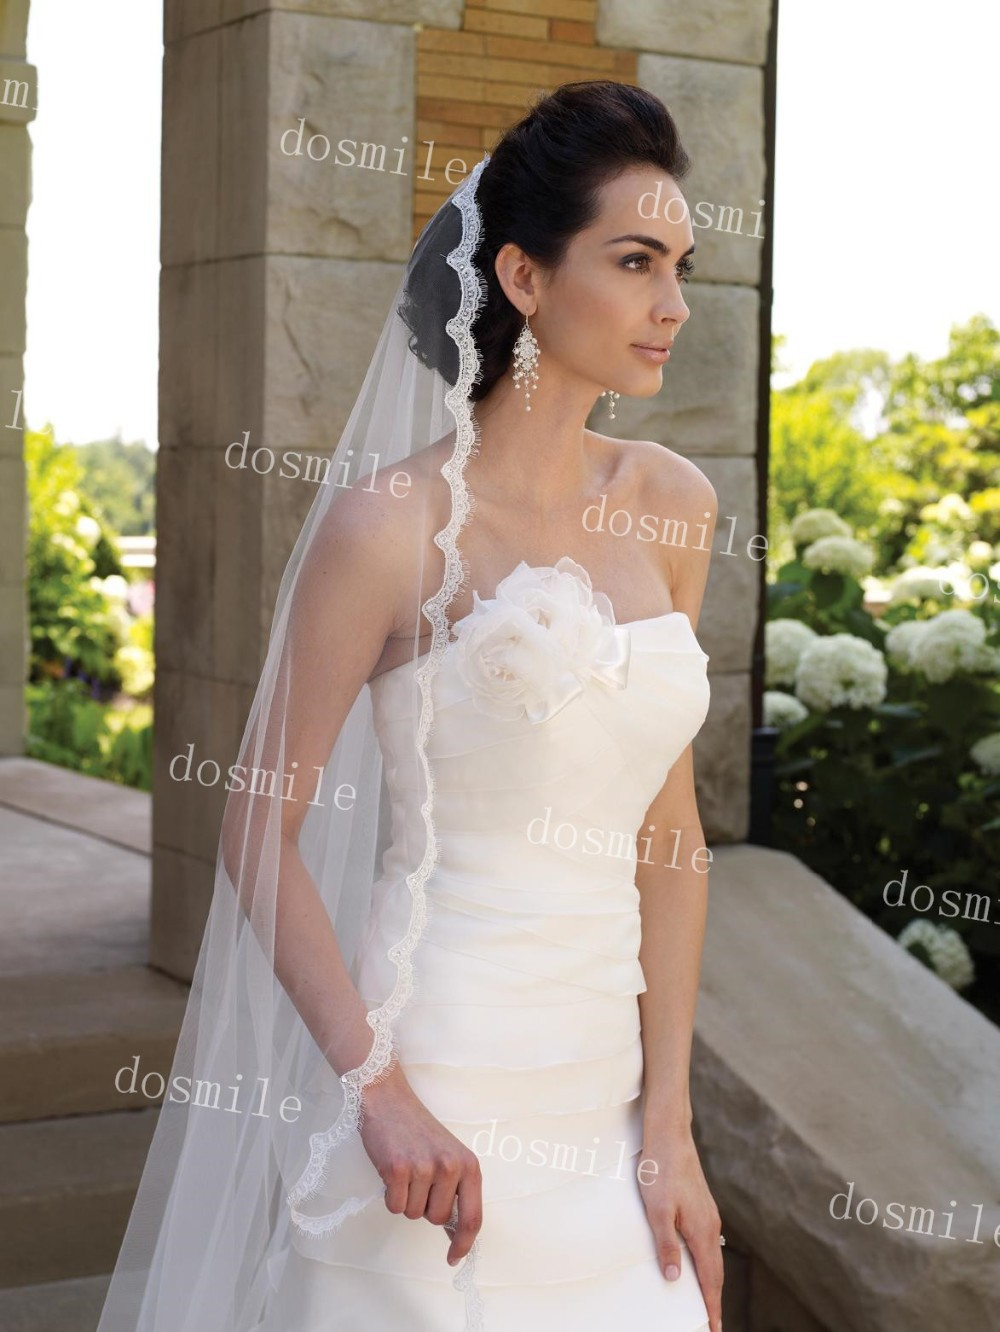 Charming One Layer Bridal Veils With Lace Eyelash Edge And Pearls Chapel Length Tulle Wedding Veils With Free Comb